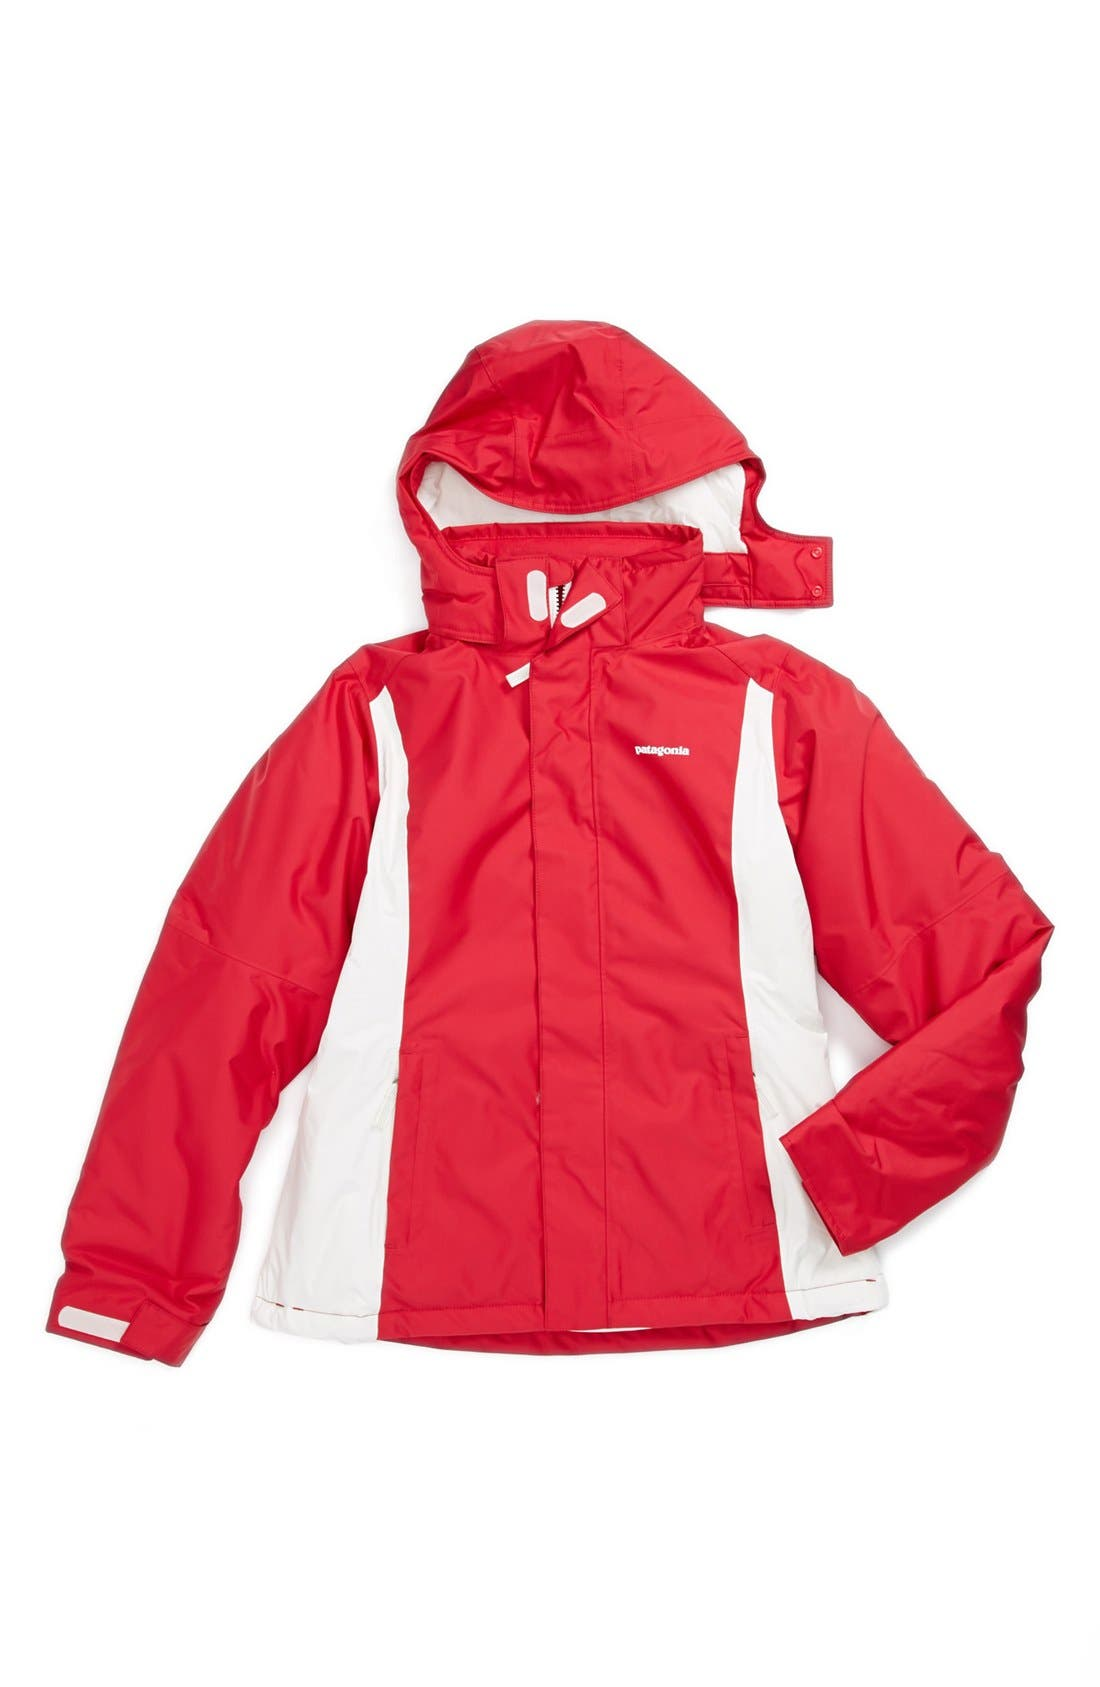 Alternate Image 1 Selected - Patagonia 'Snowbelle' Insulated Jacket (Little Girls & Big Girls)